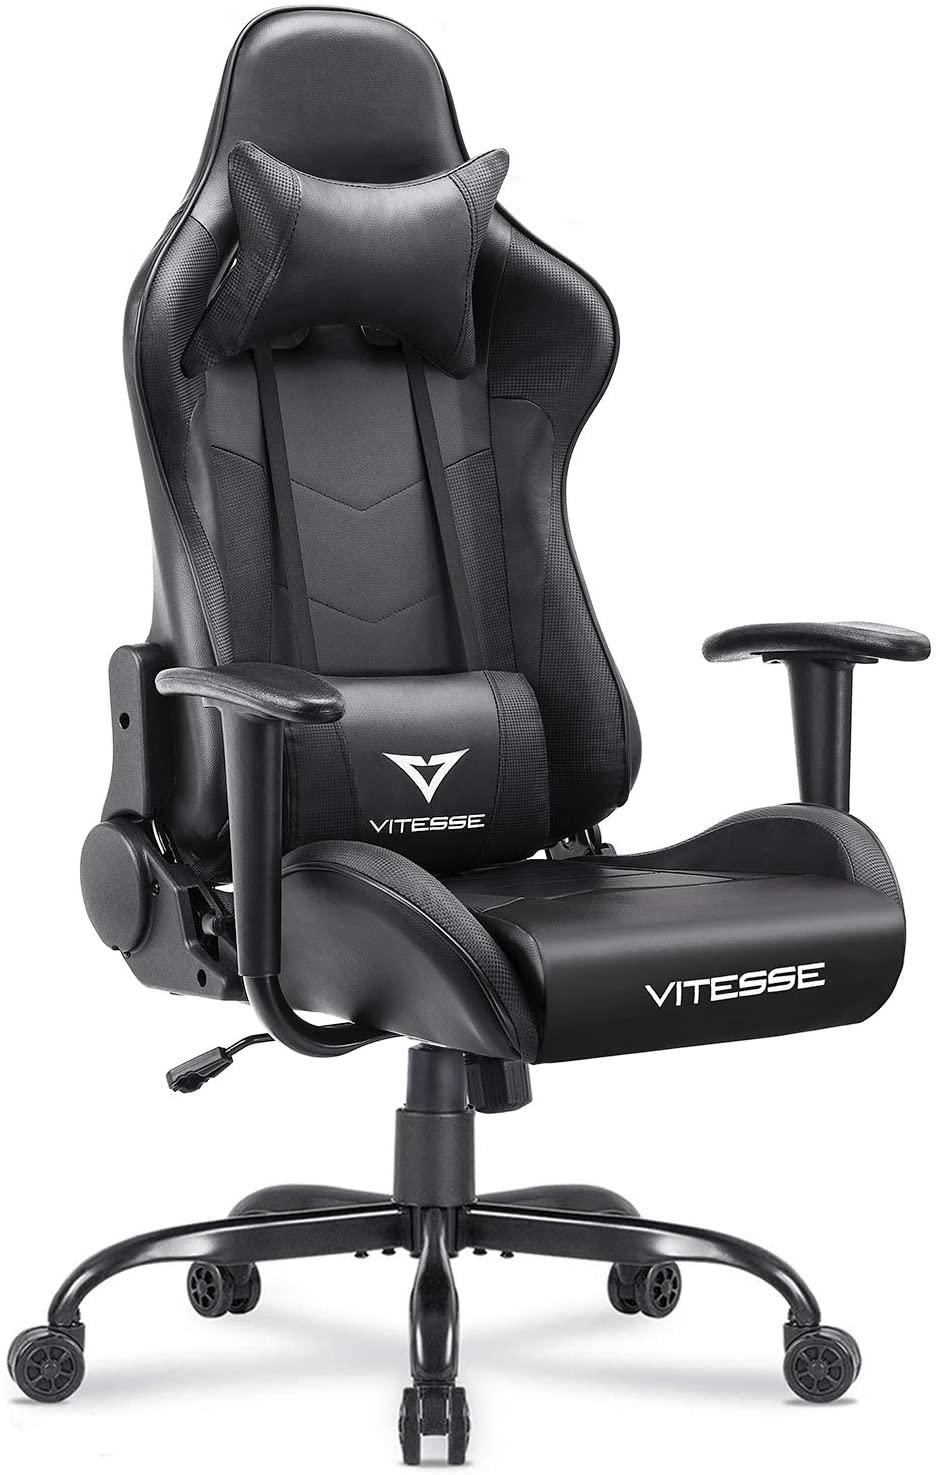 Top 5 Best Gaming Chairs under $100 4